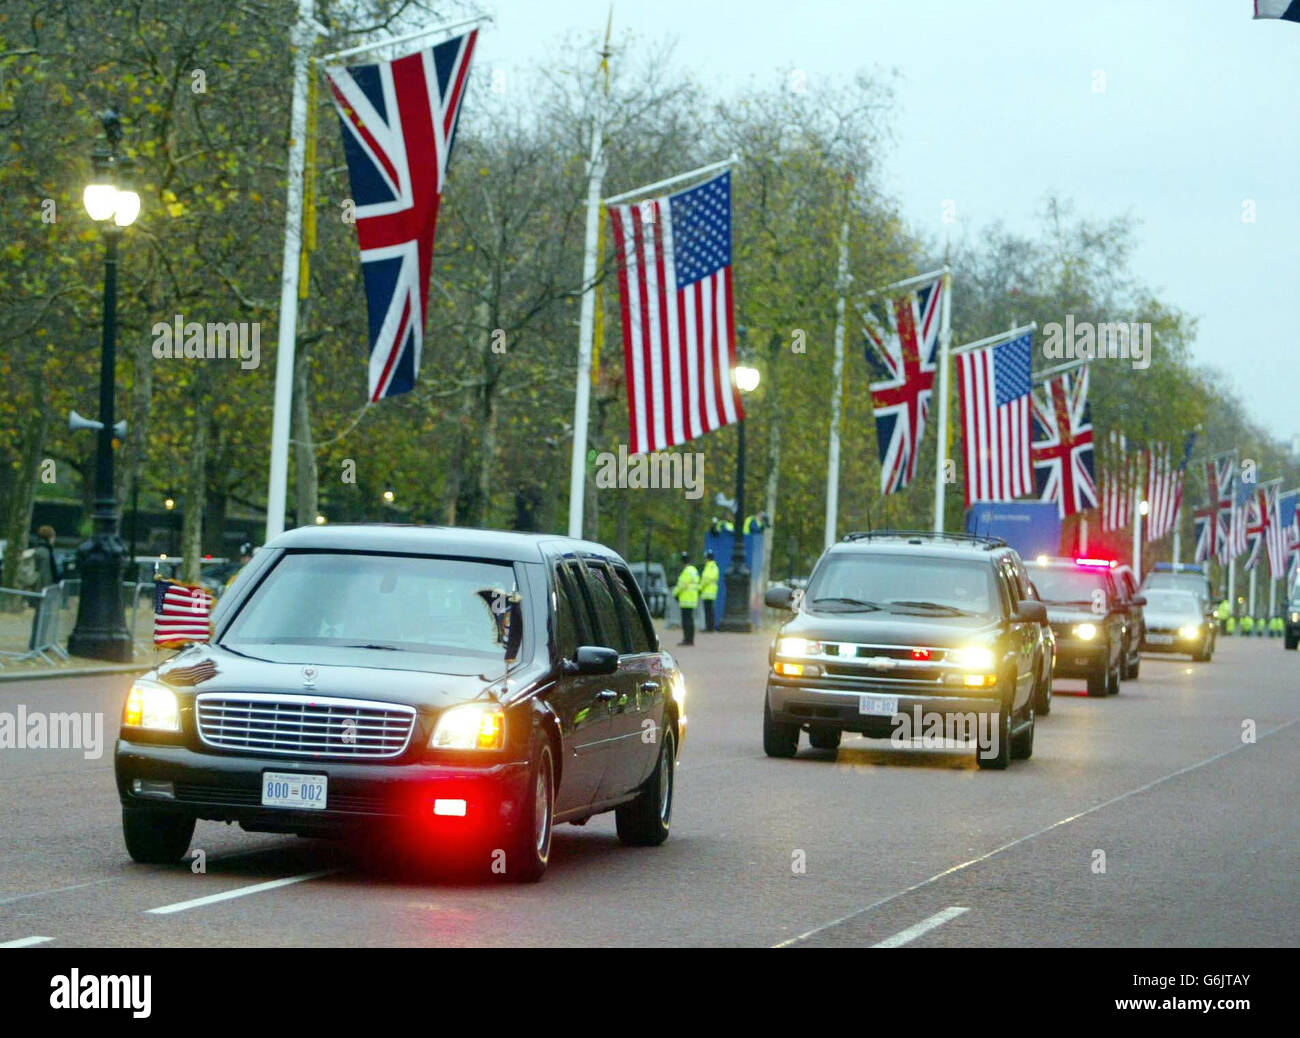 George Bush's Convoy - Stock Image